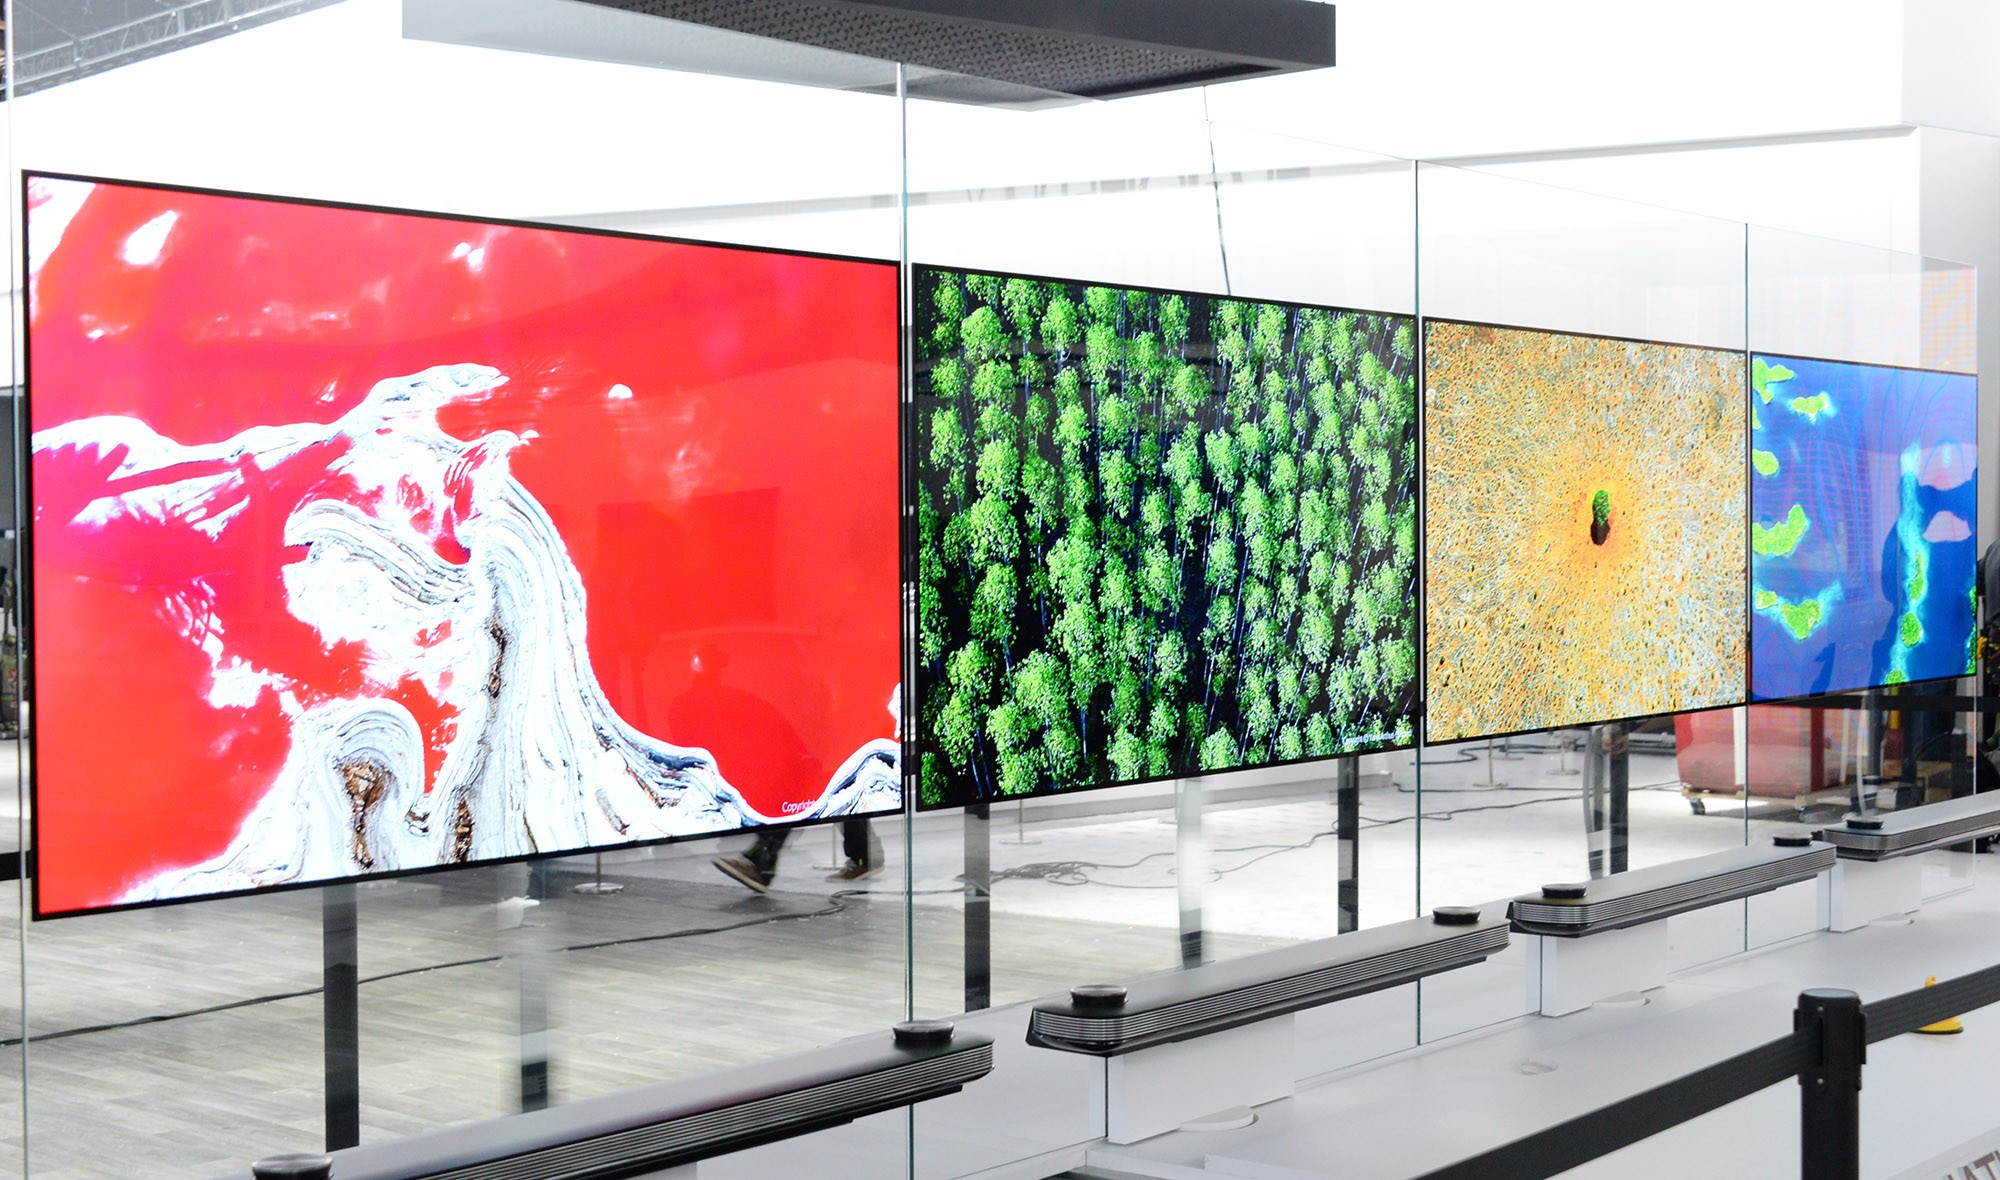 The LG SIGNATURE OLED TV W CES 2017 installation while moved to fit side-by-side